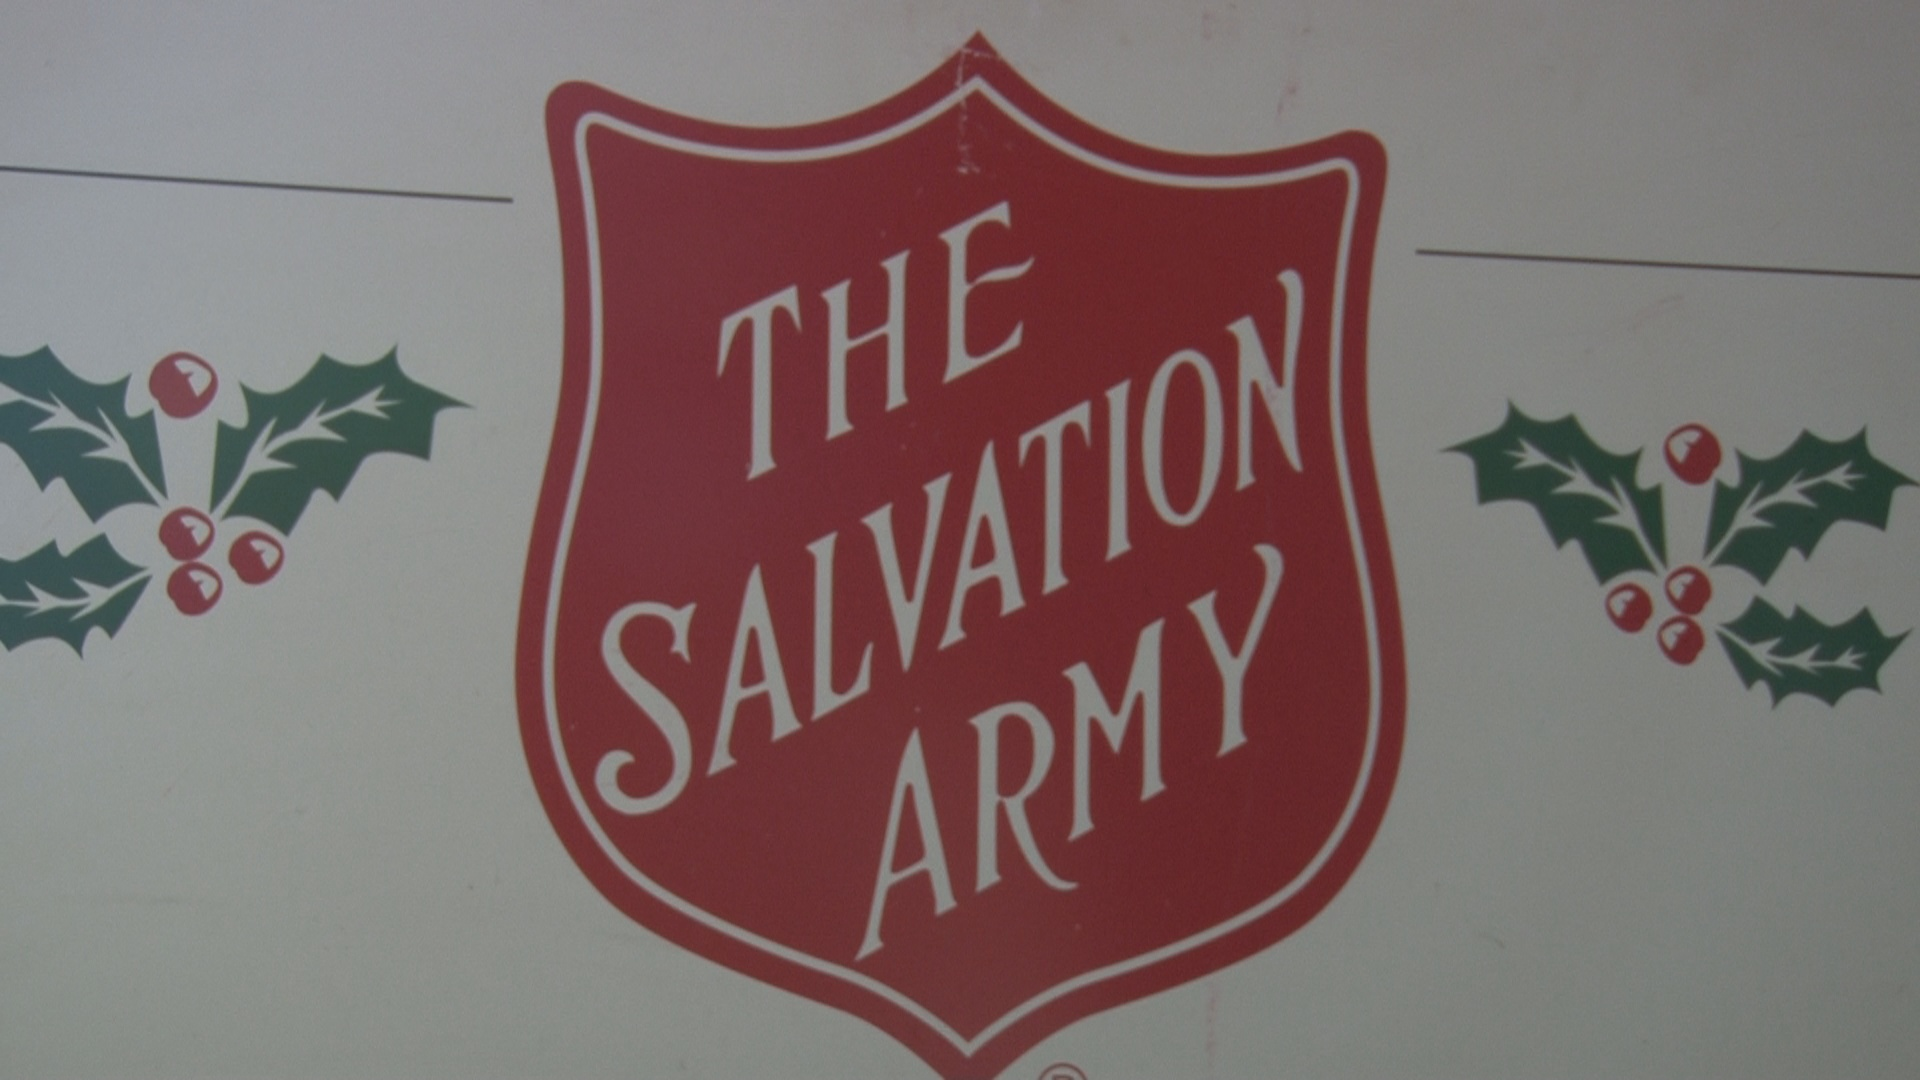 salvation army_1510611913930.jpg